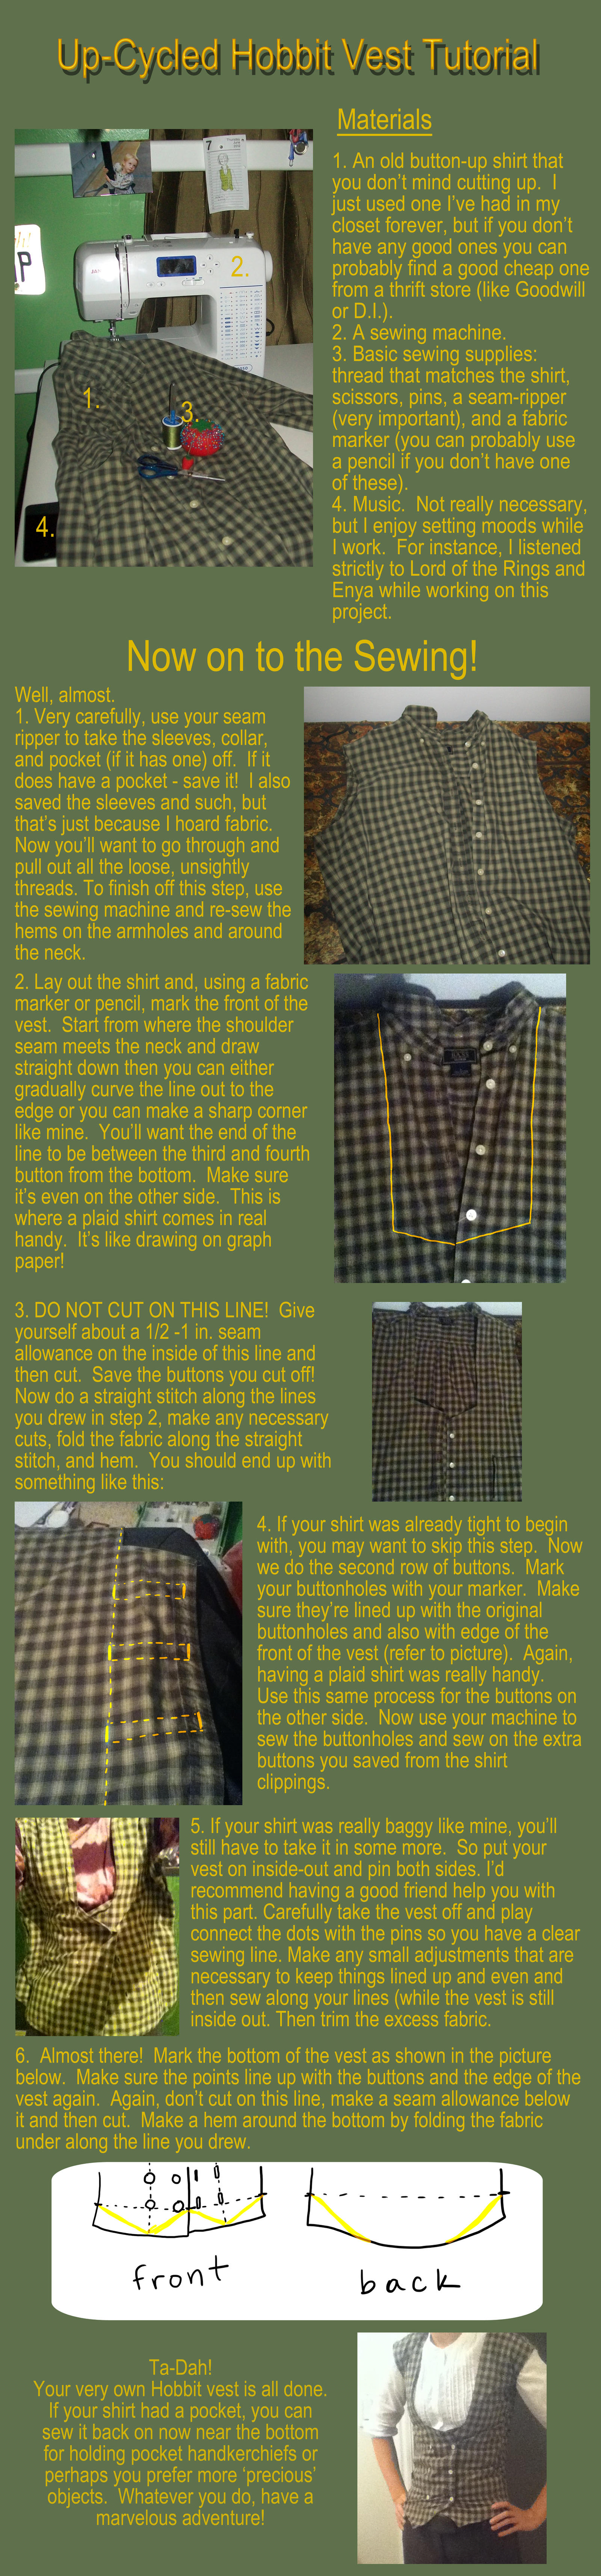 Up-Cycled Hobbit Vest Tutorial by Autnott